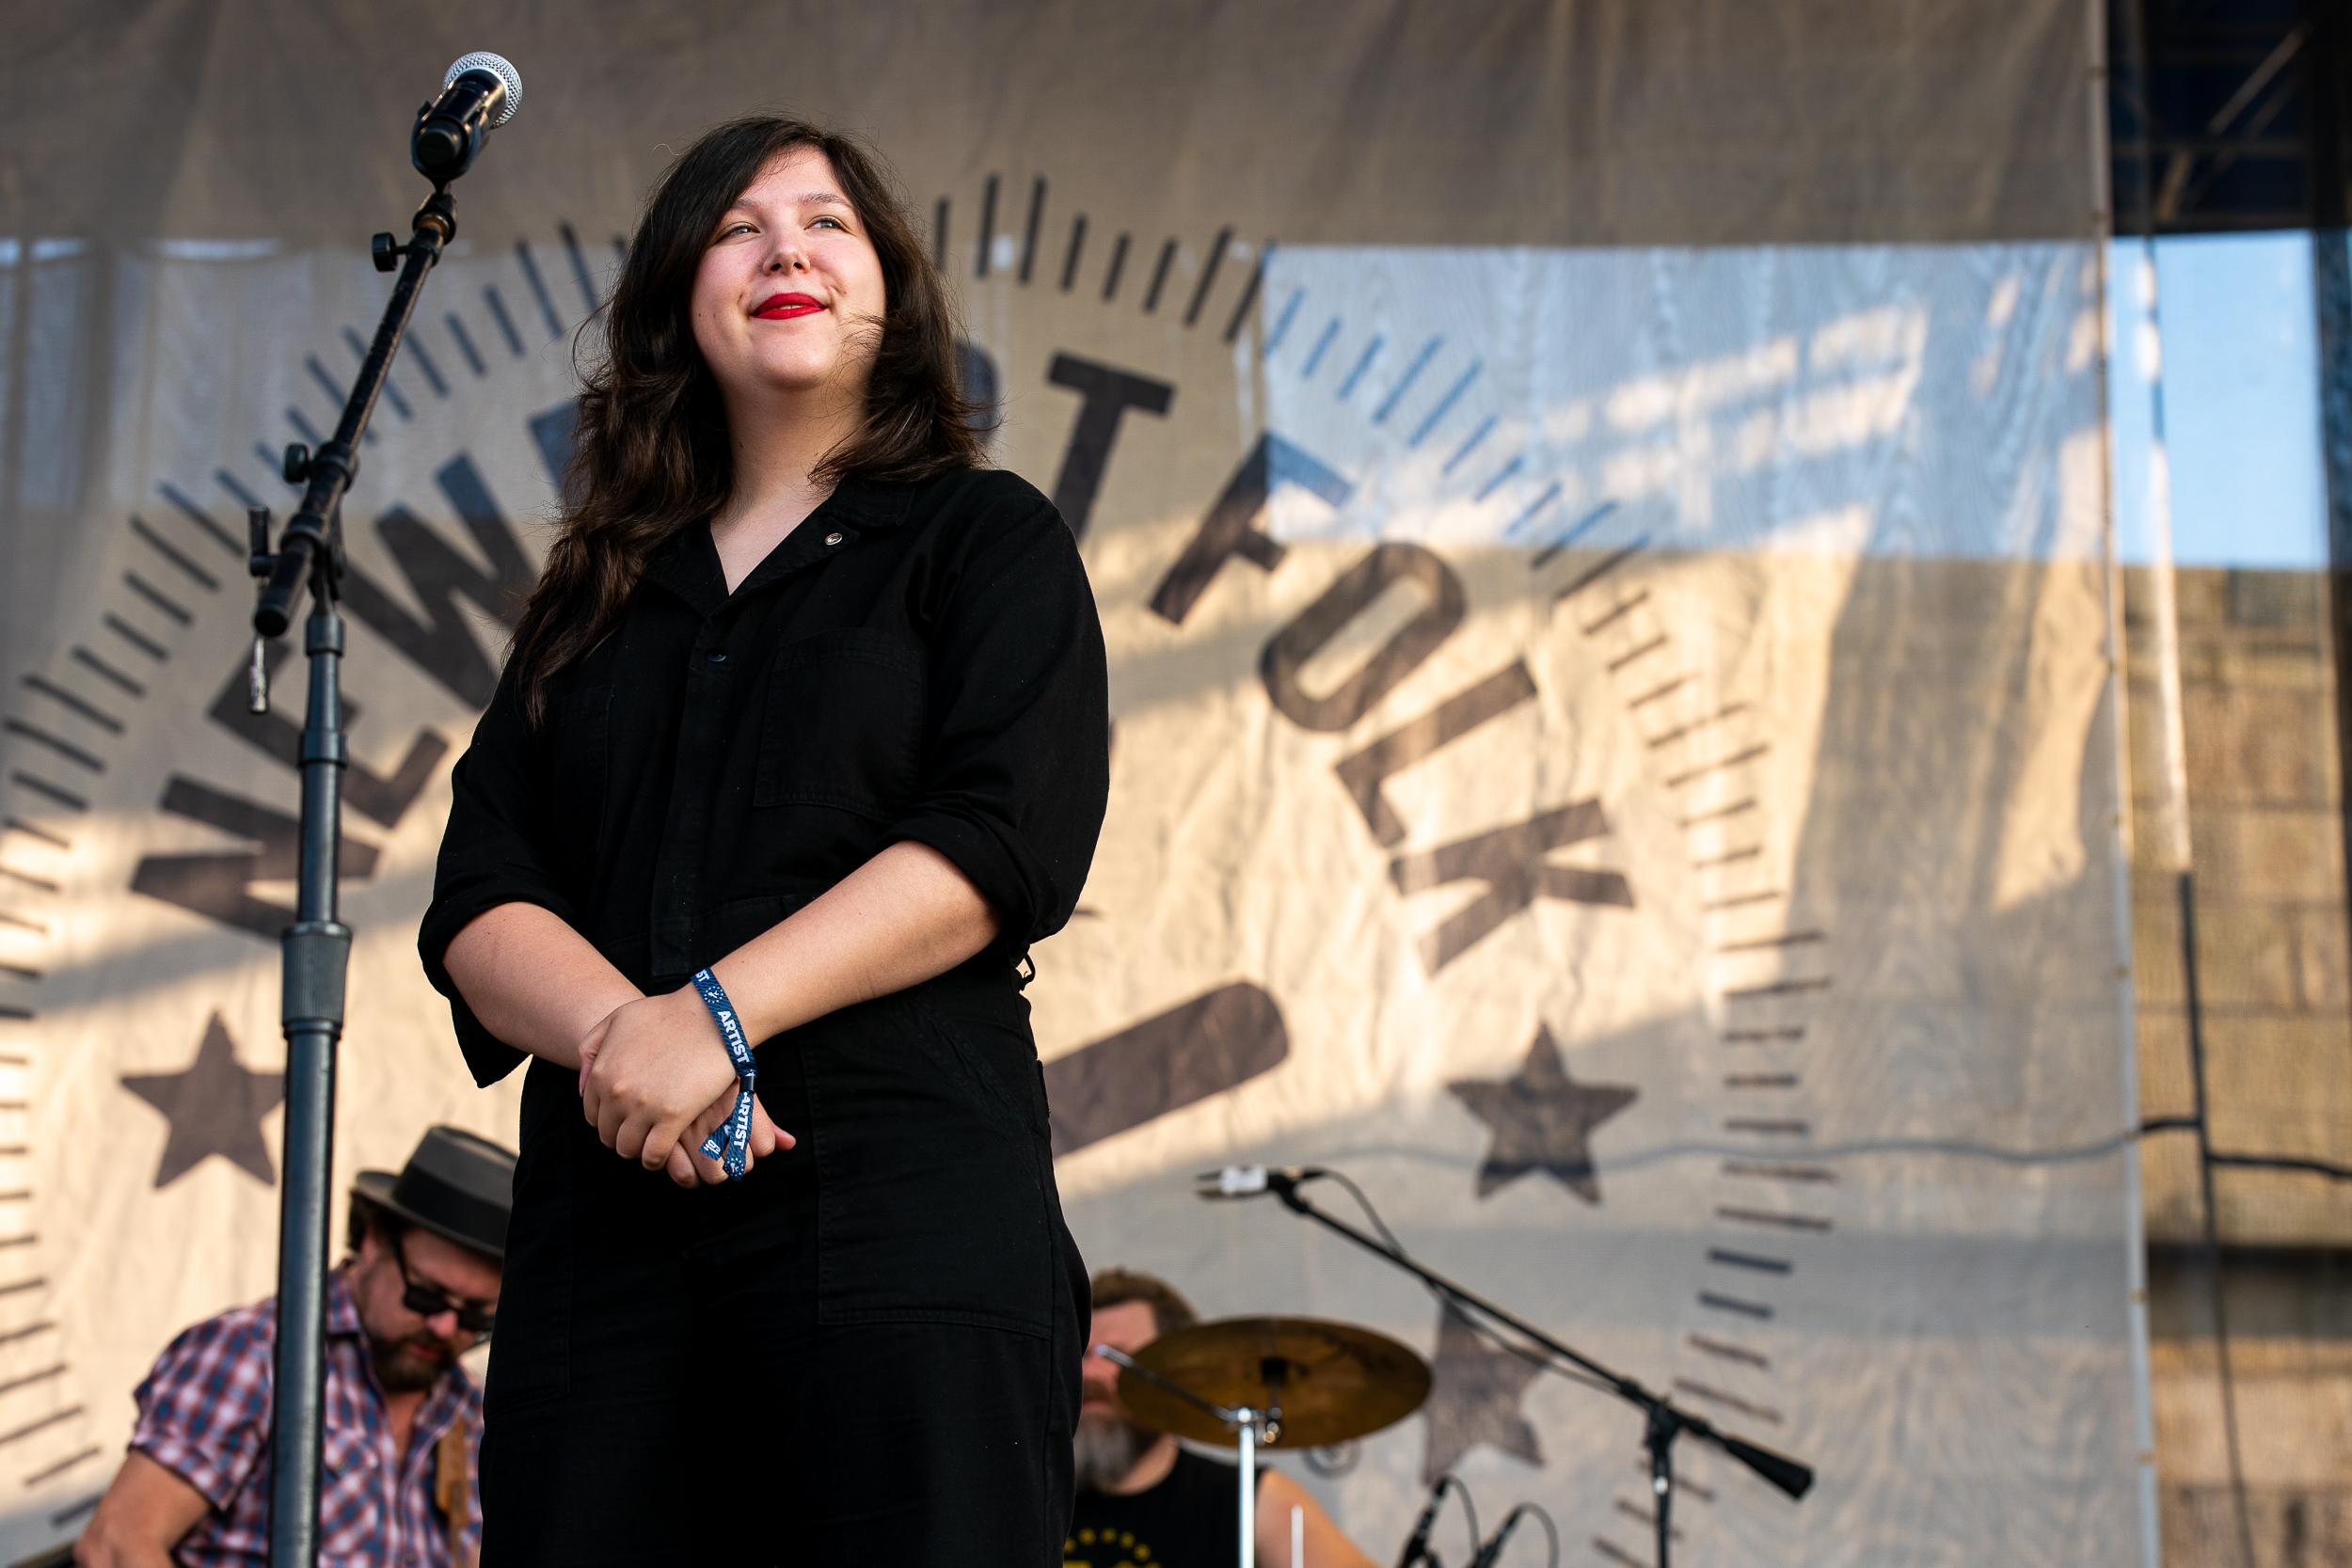 Lucy Dacus at Newport Folk Festival (Photo by Mauricio Castro)